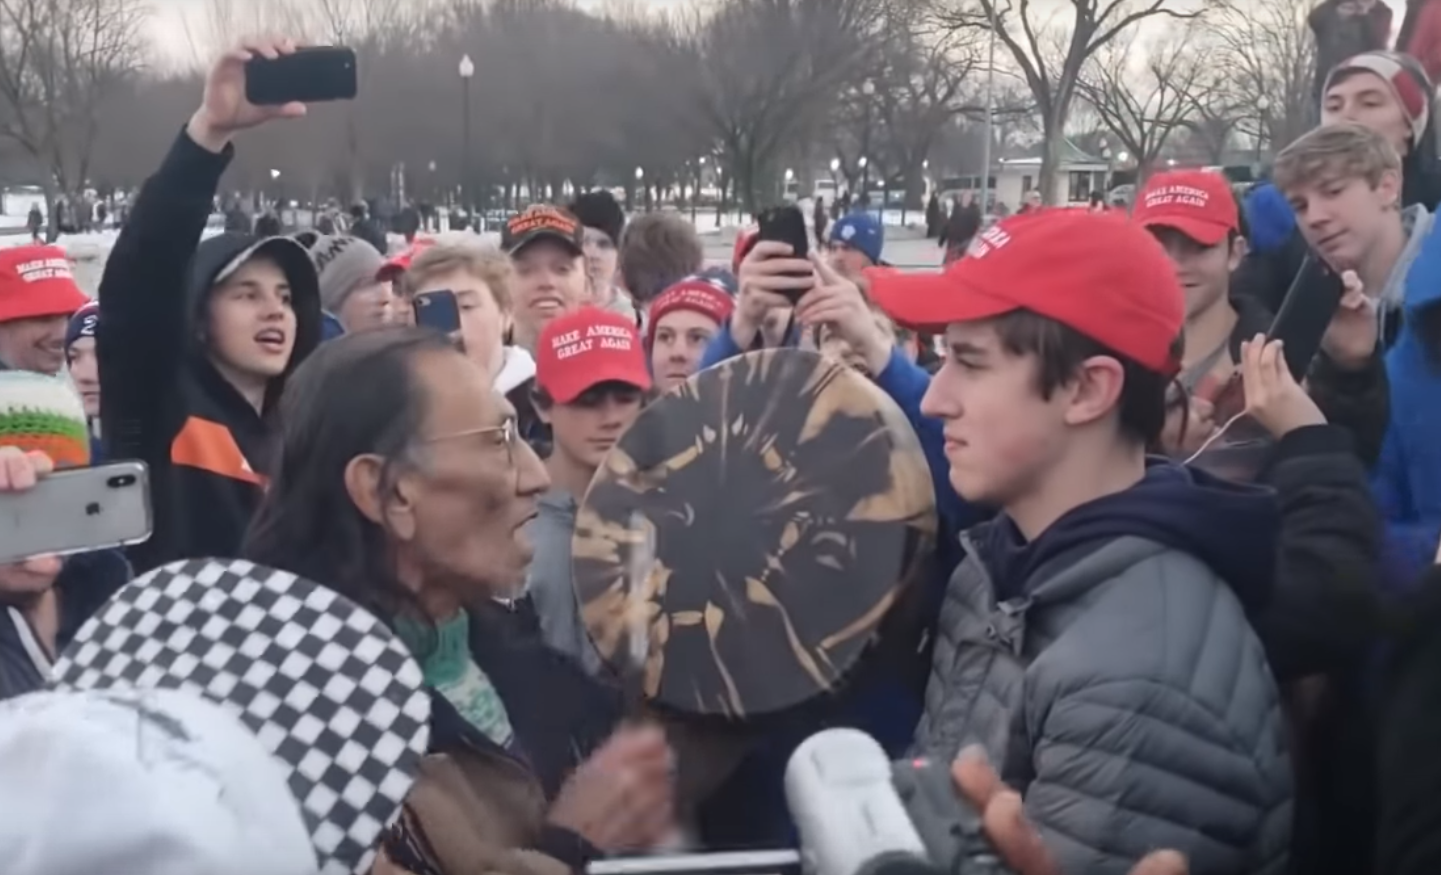 """You won't get any further reaction of aggression, and I'm willing to stand here as long as you want to hit this drum in my face,"" said Sandmann in explanation of his expression. (Image: YouTube/Screenshot)"